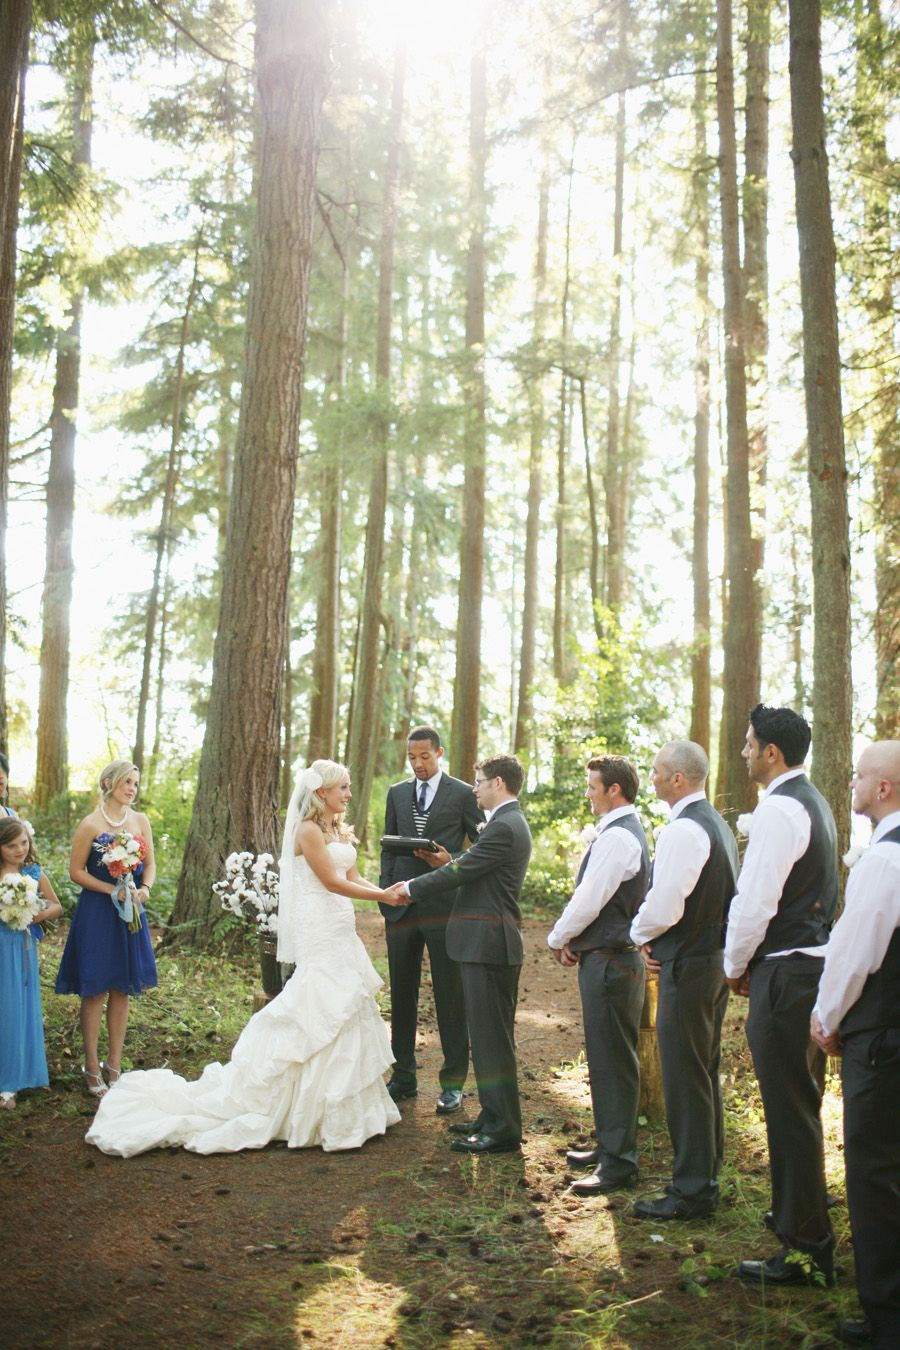 Ridiculously Beautiful Forest Wedding At Kitsap Memorial State Park In Poulsbo Washington